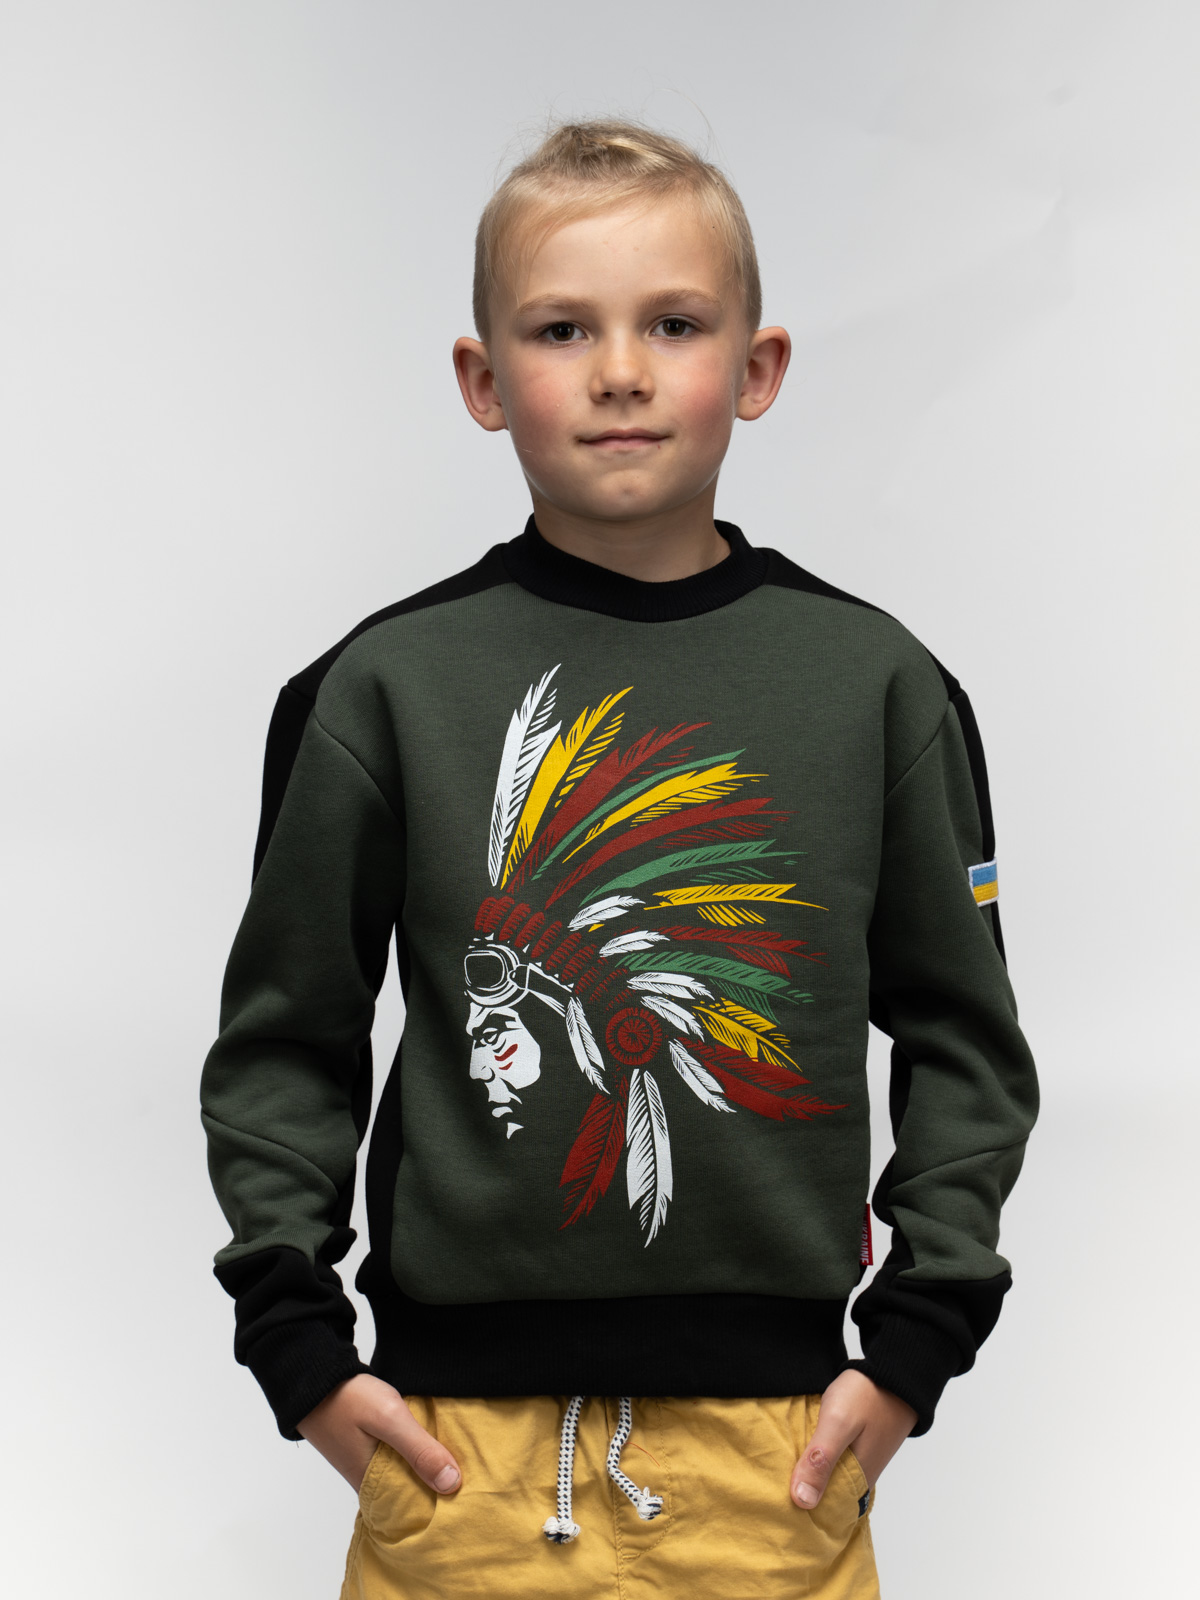 Kids Sweatshirt Indian. Color khaki. Sweatshirt: unisex, well suited for both boys and girls.